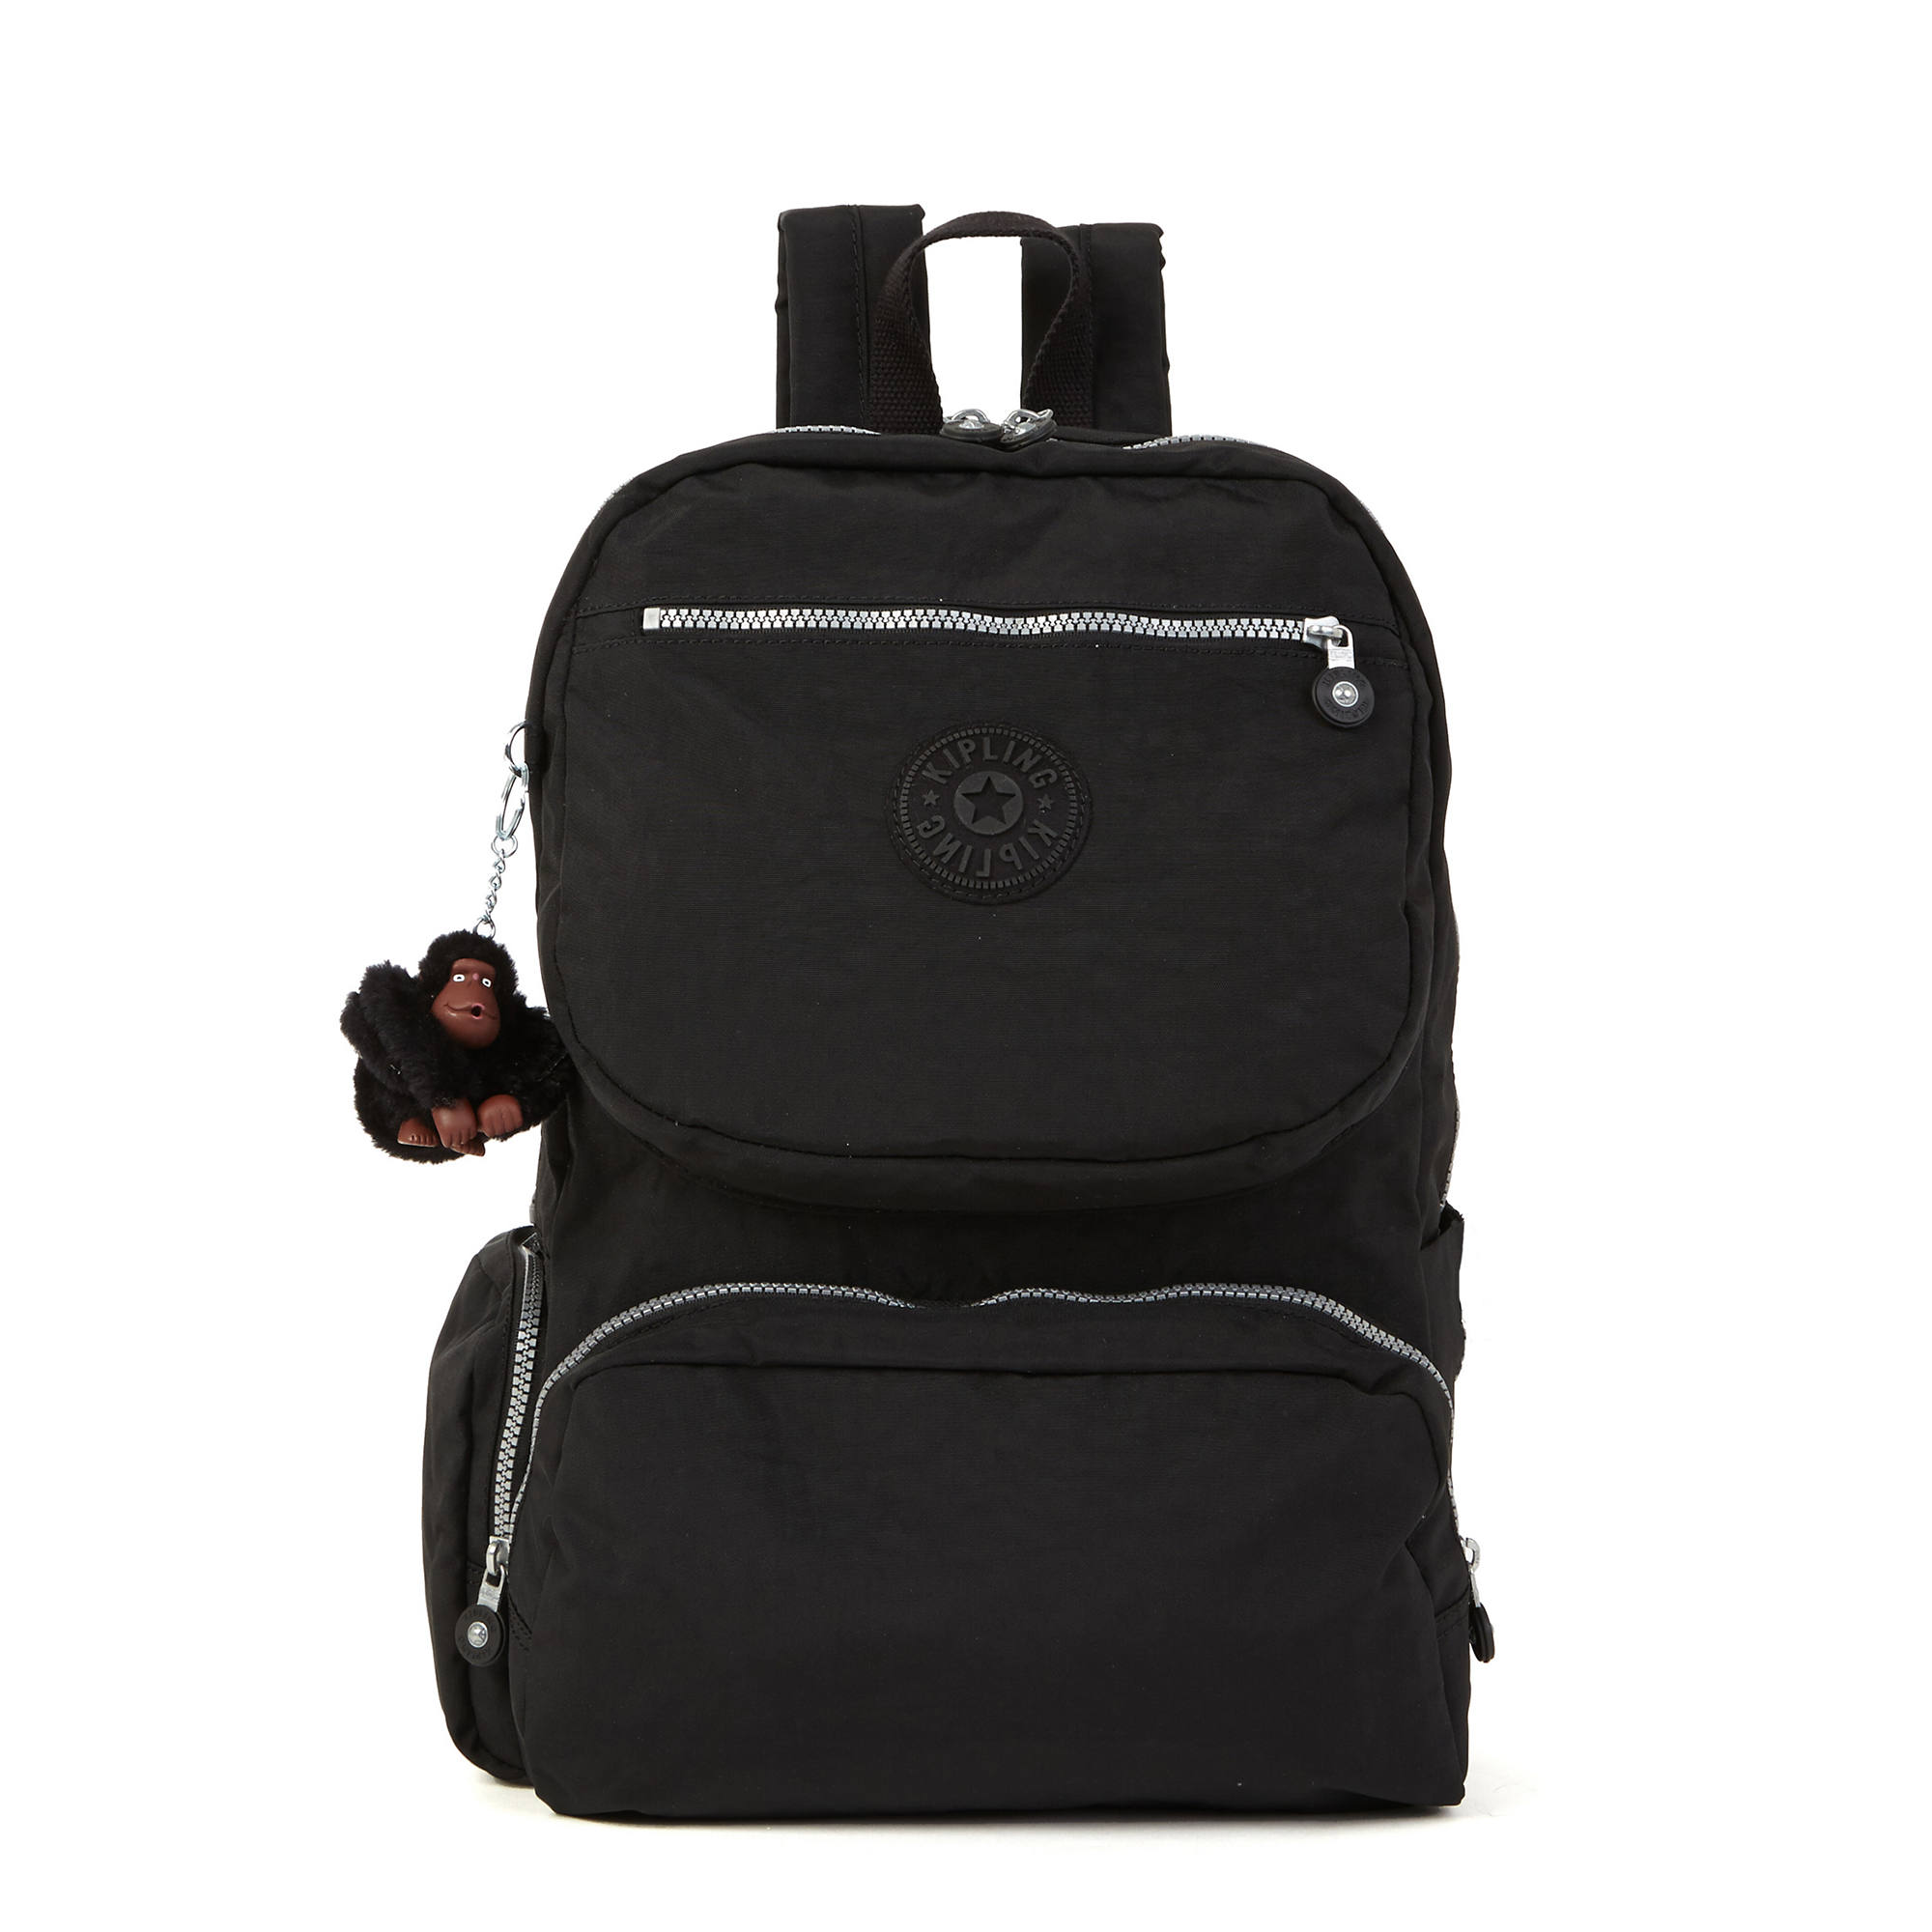 Laptop Backpacks: Backpacks with Laptop Sleeve | Kipling